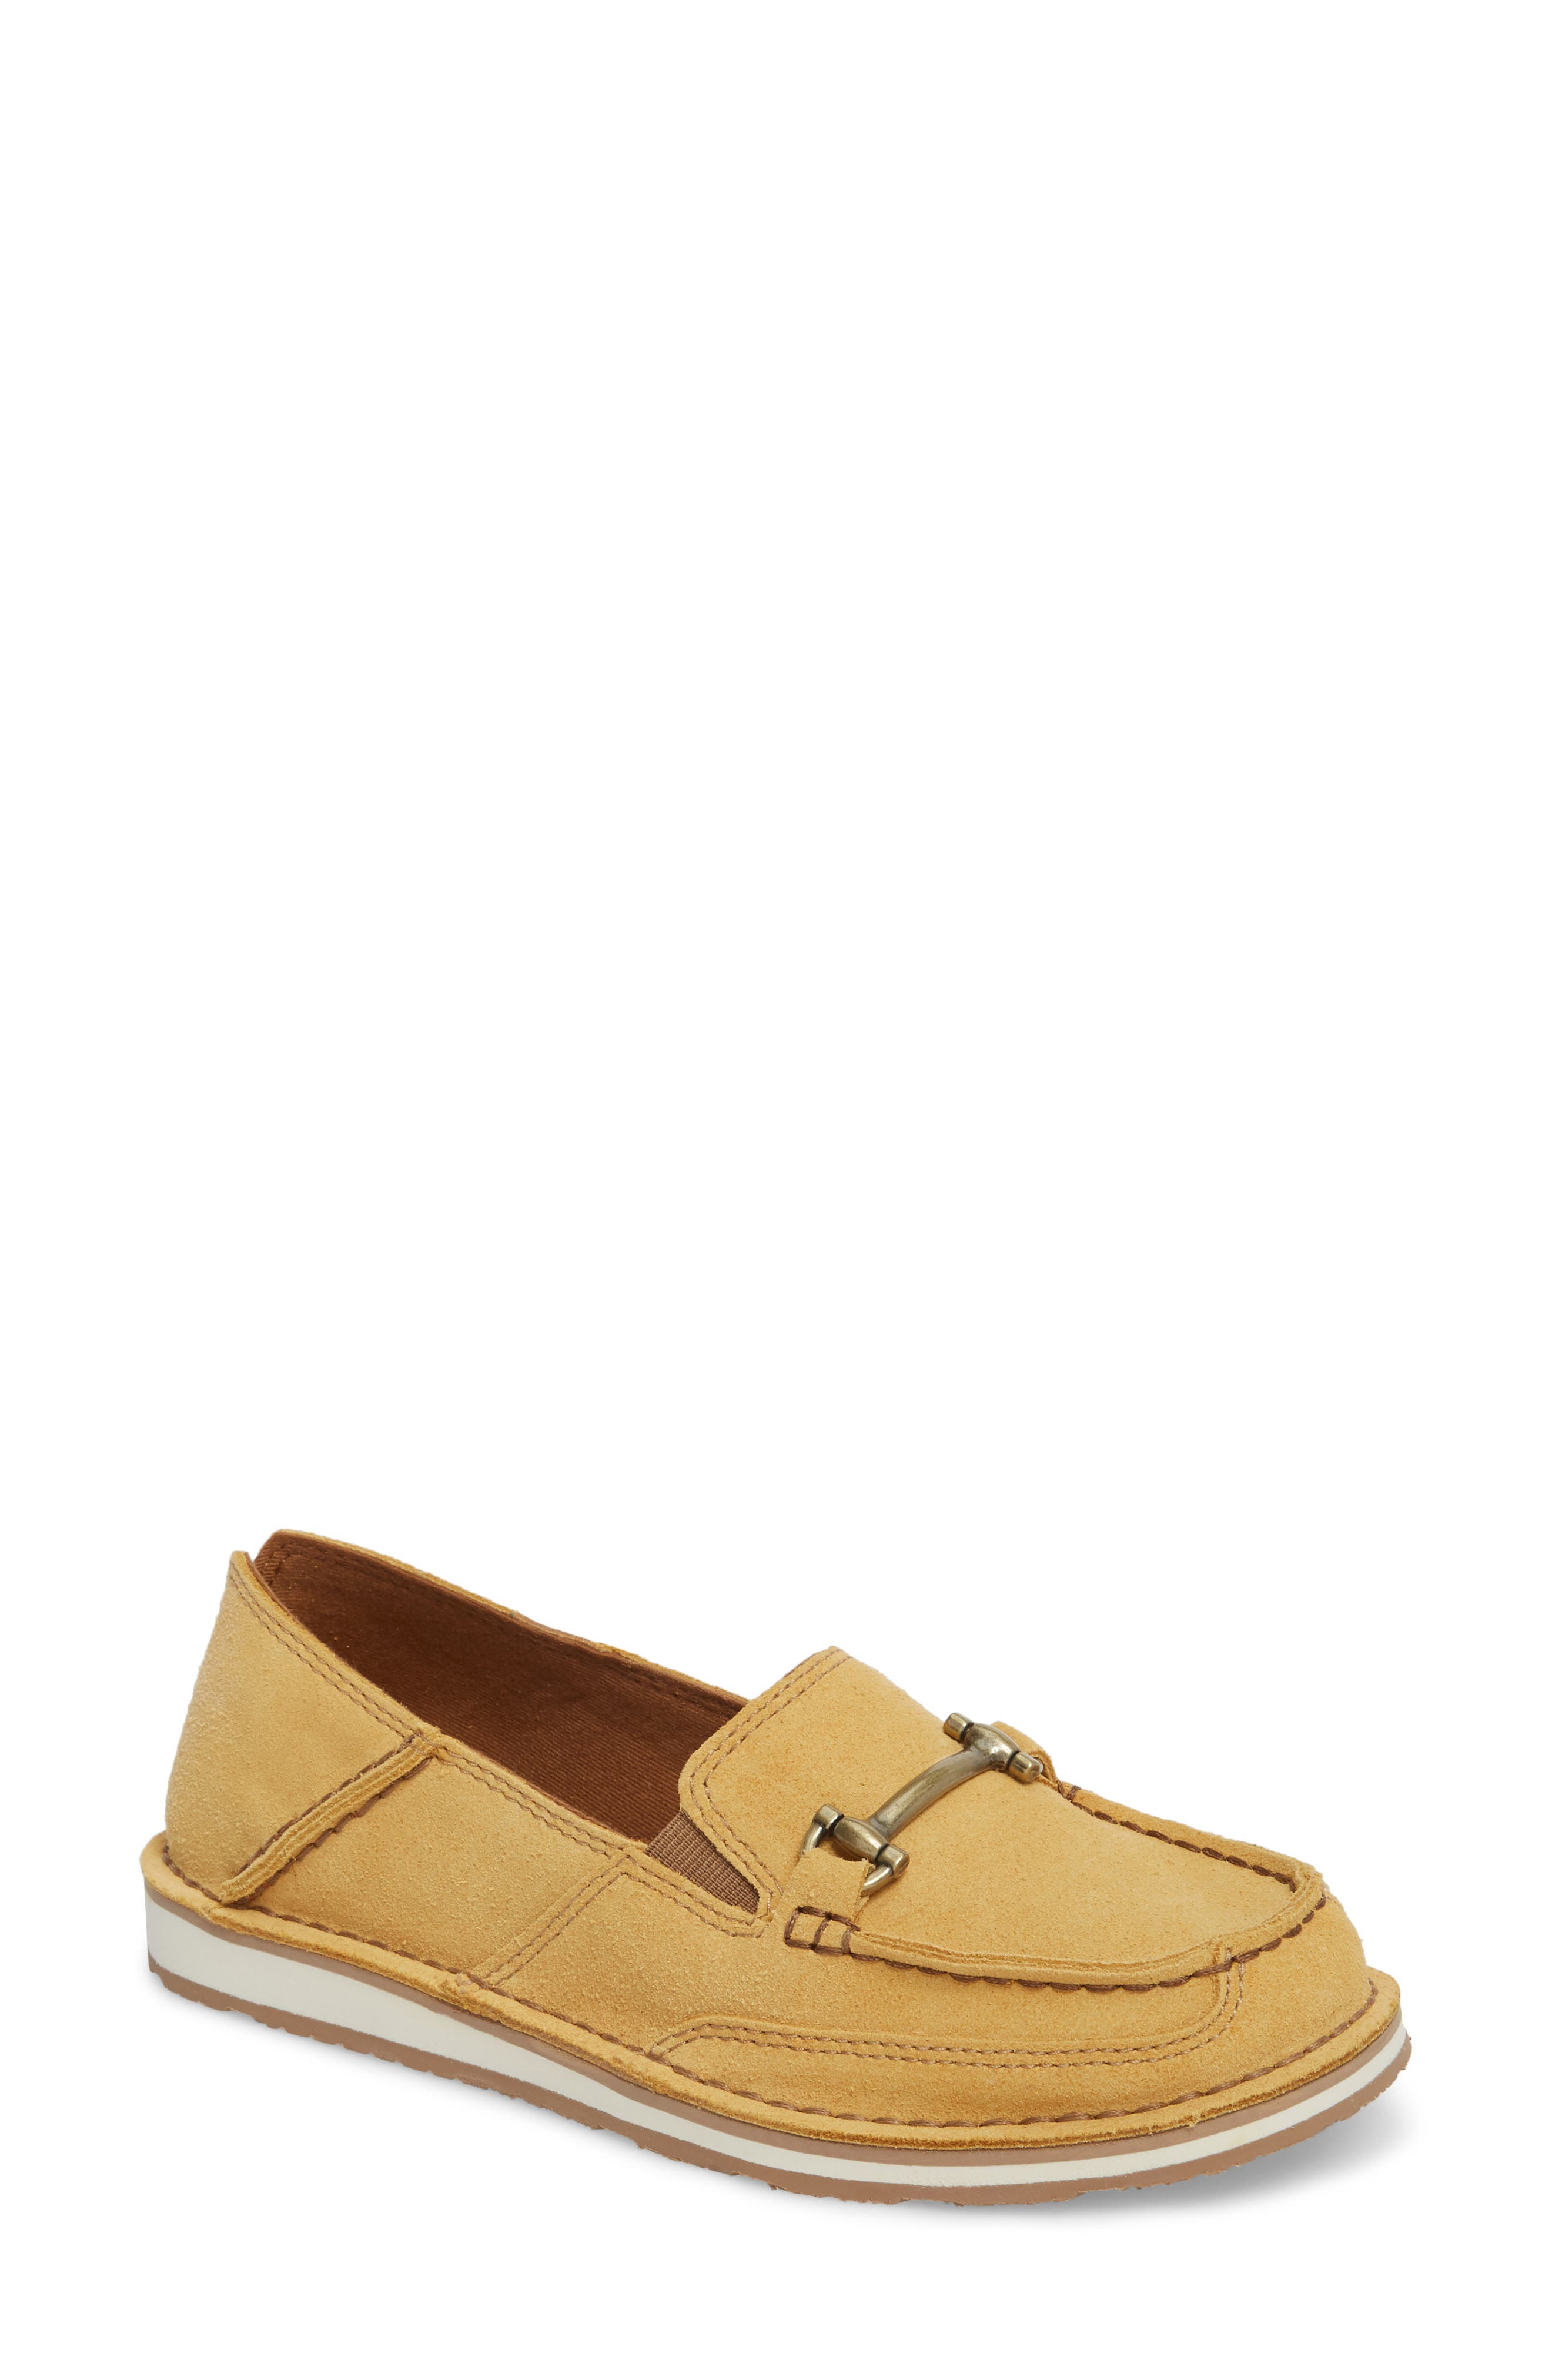 Alternate Image 1 Selected - Ariat Cruiser Castaway Loafer (Women)